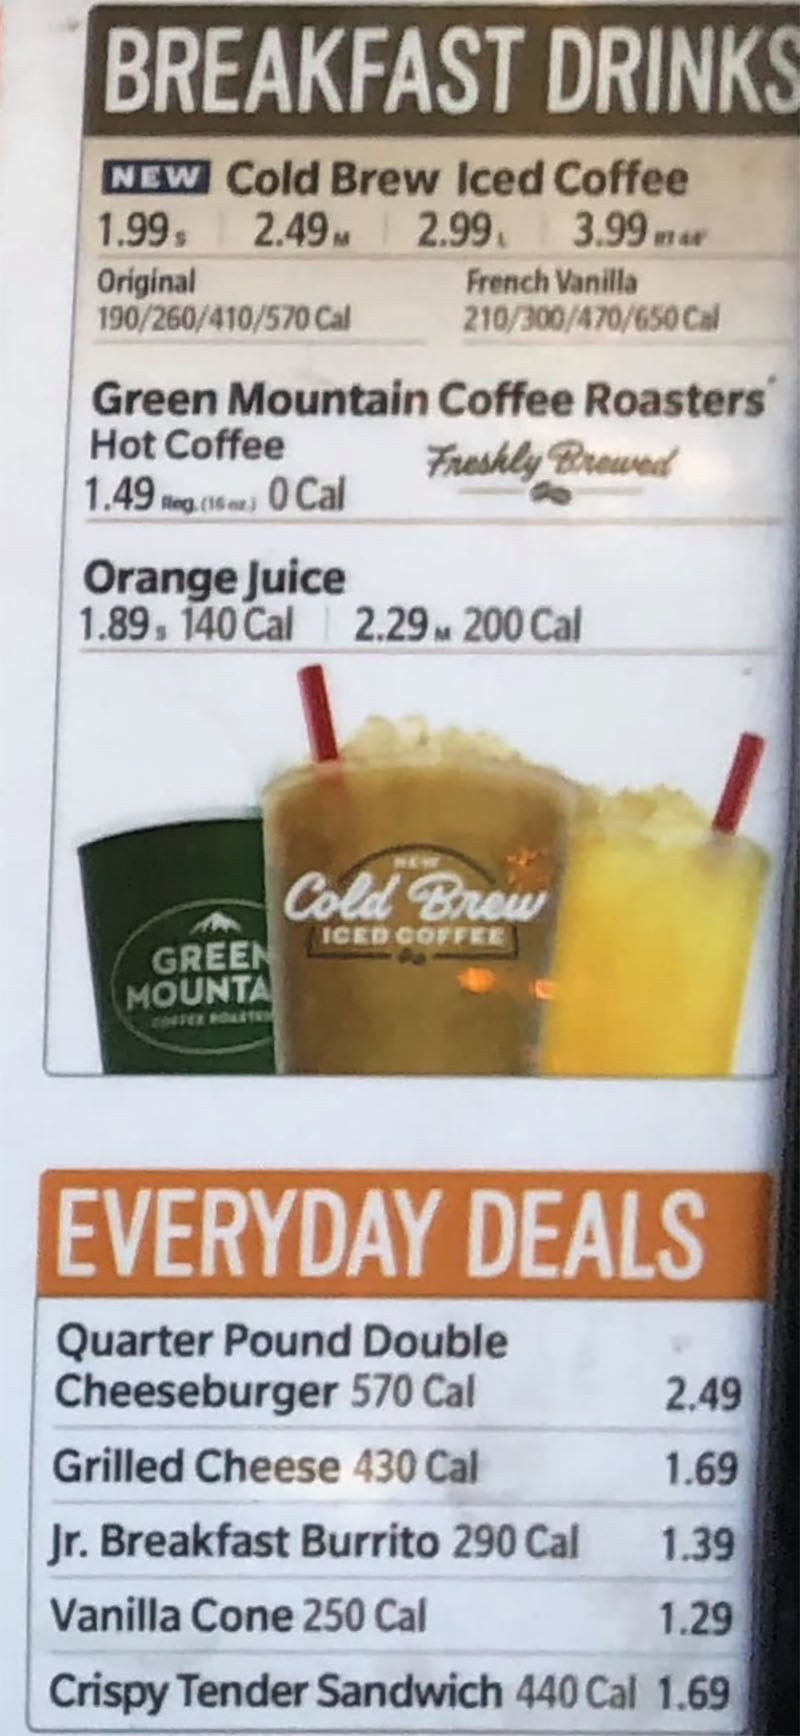 Sonic Drive-In menu - breakfast drinks, deals